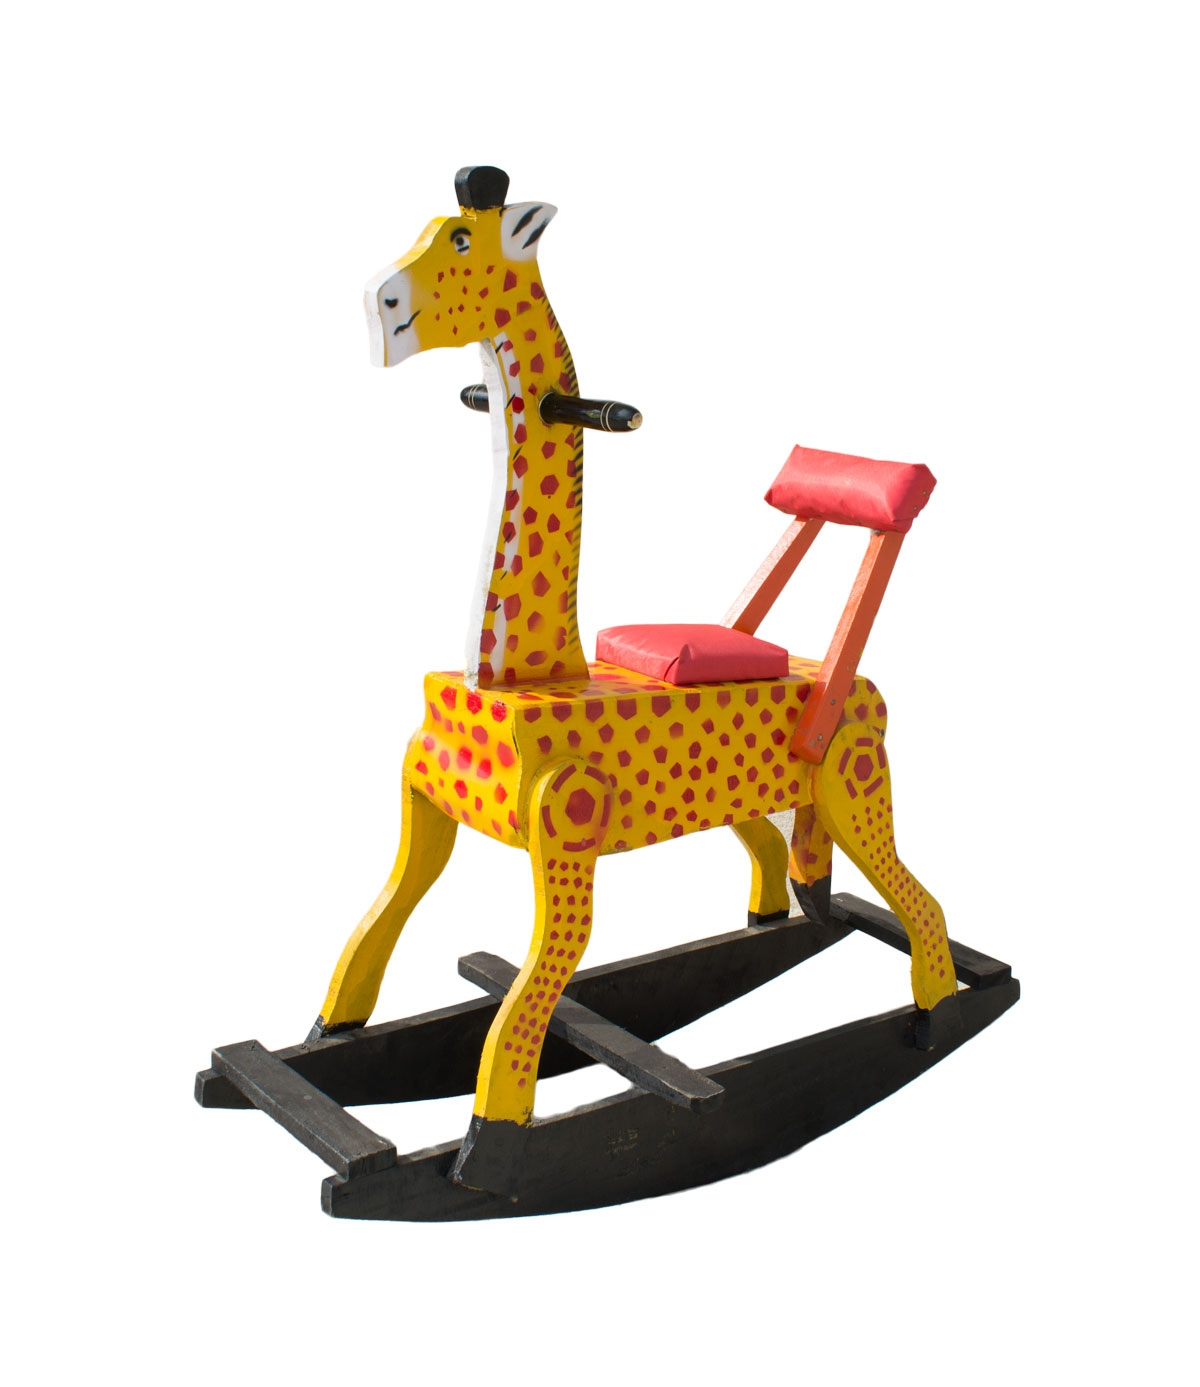 Channapatna Toyscustom Wooden Engraved Giftsrocking Horsewooden Handicrafts